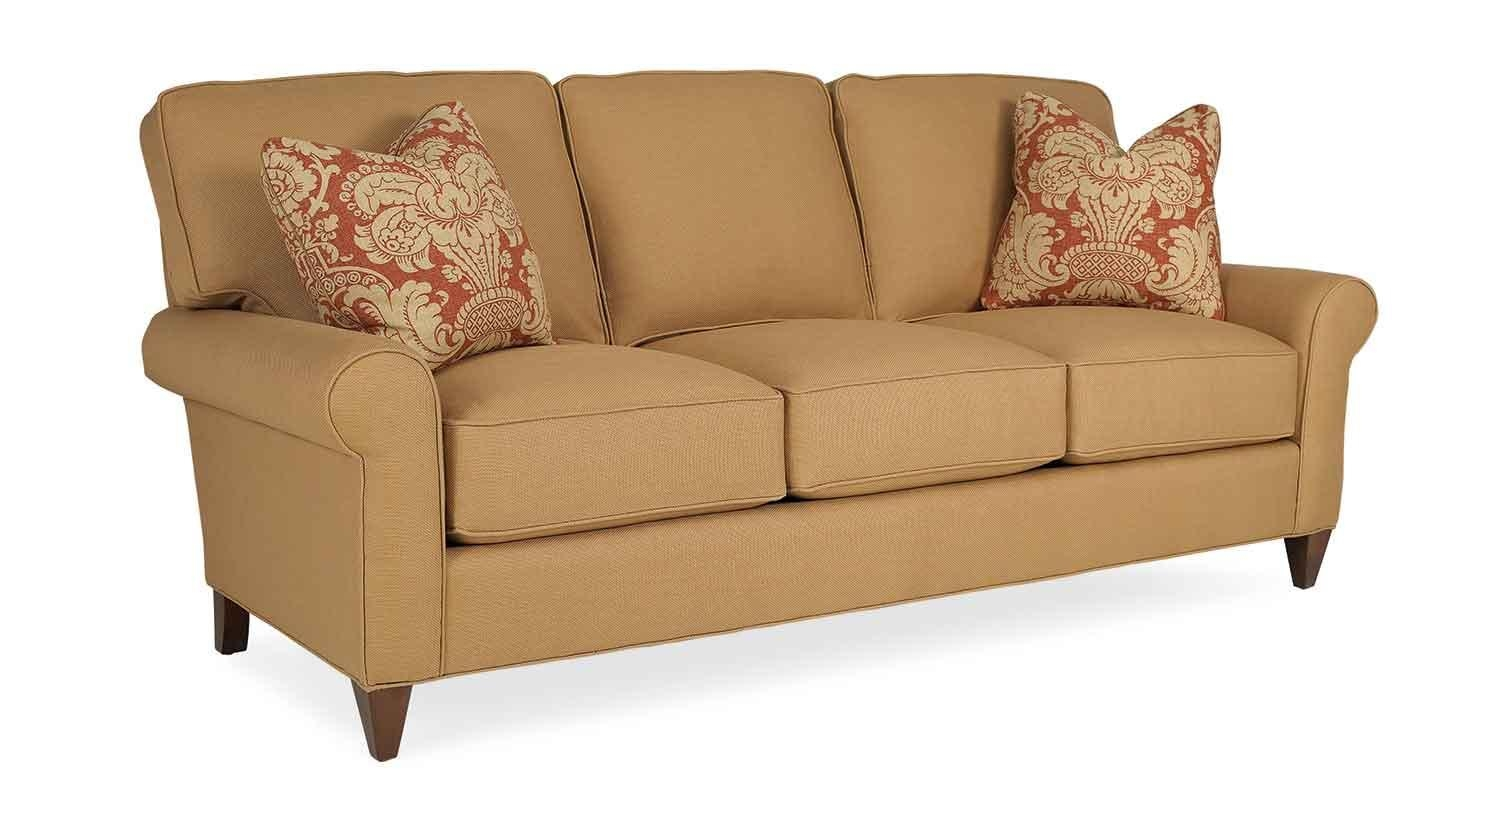 Circle Furniture – Circle Furniture | Sofas And Loveseats Pertaining To Circle Sofas (Image 1 of 20)